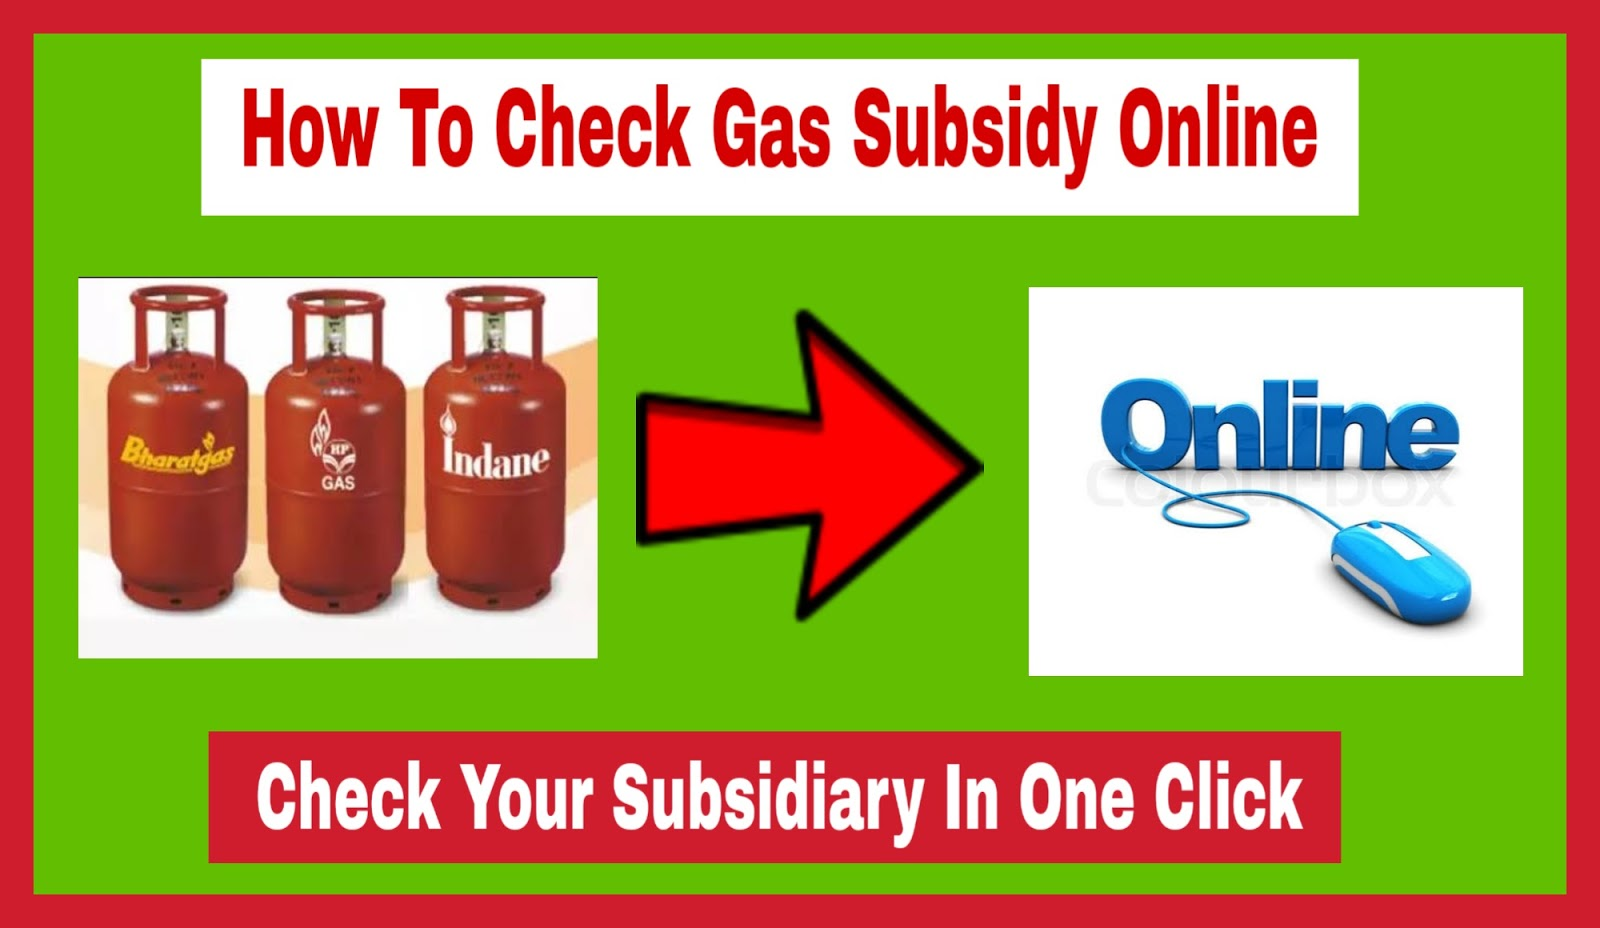 How to Check Gas Subsidy Online